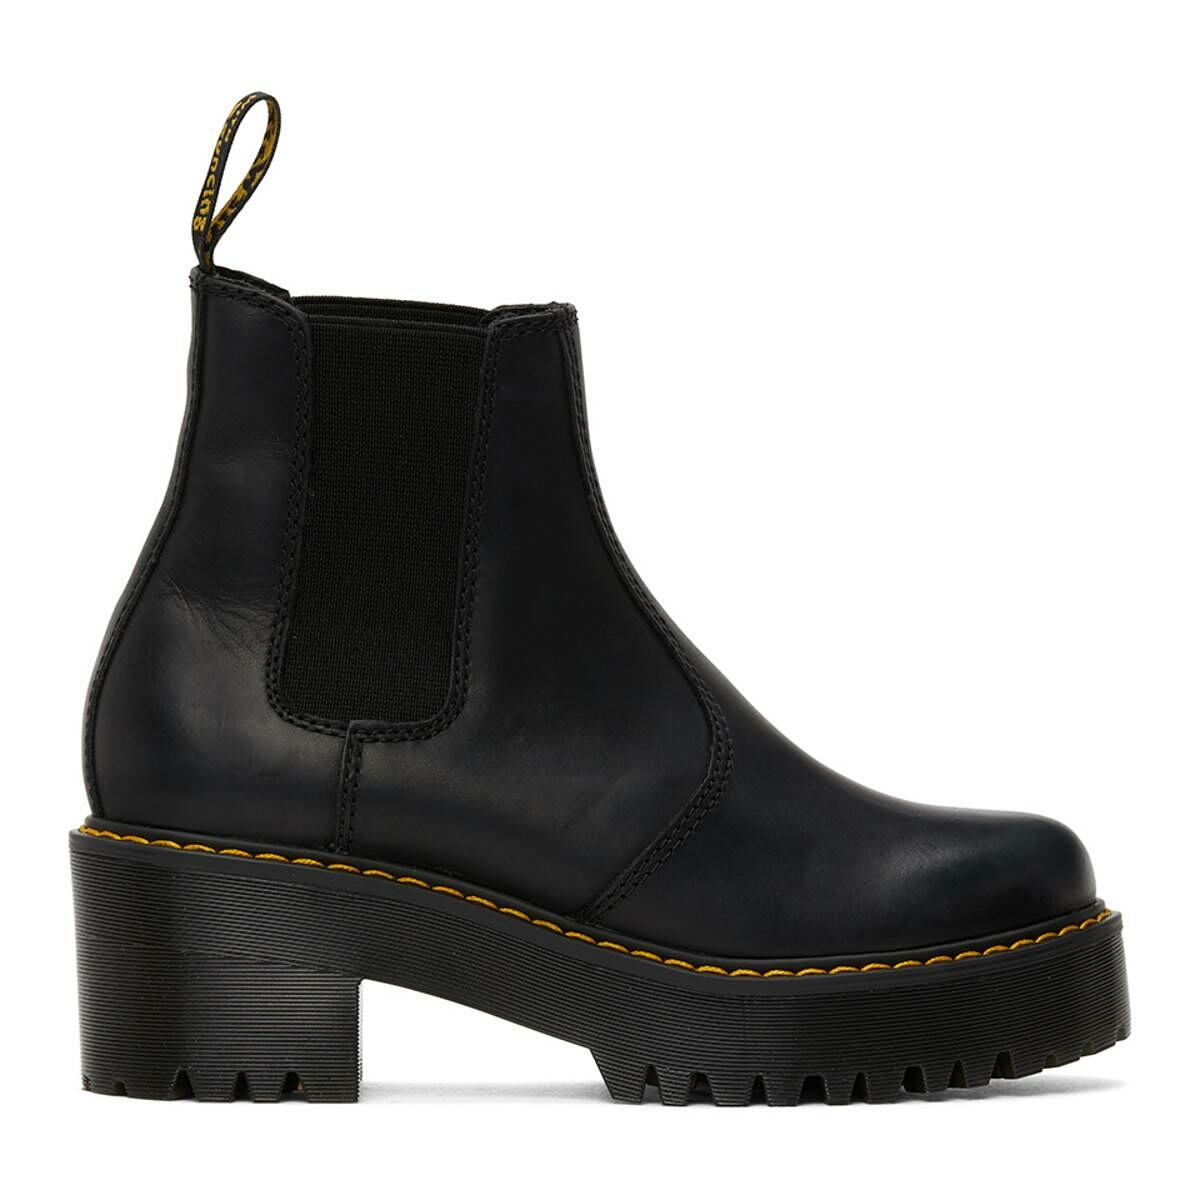 Dr. Martens Black Rometty Platform Boots Ssense USA WOMEN Women SHOES Womens ANKLE BOOTS